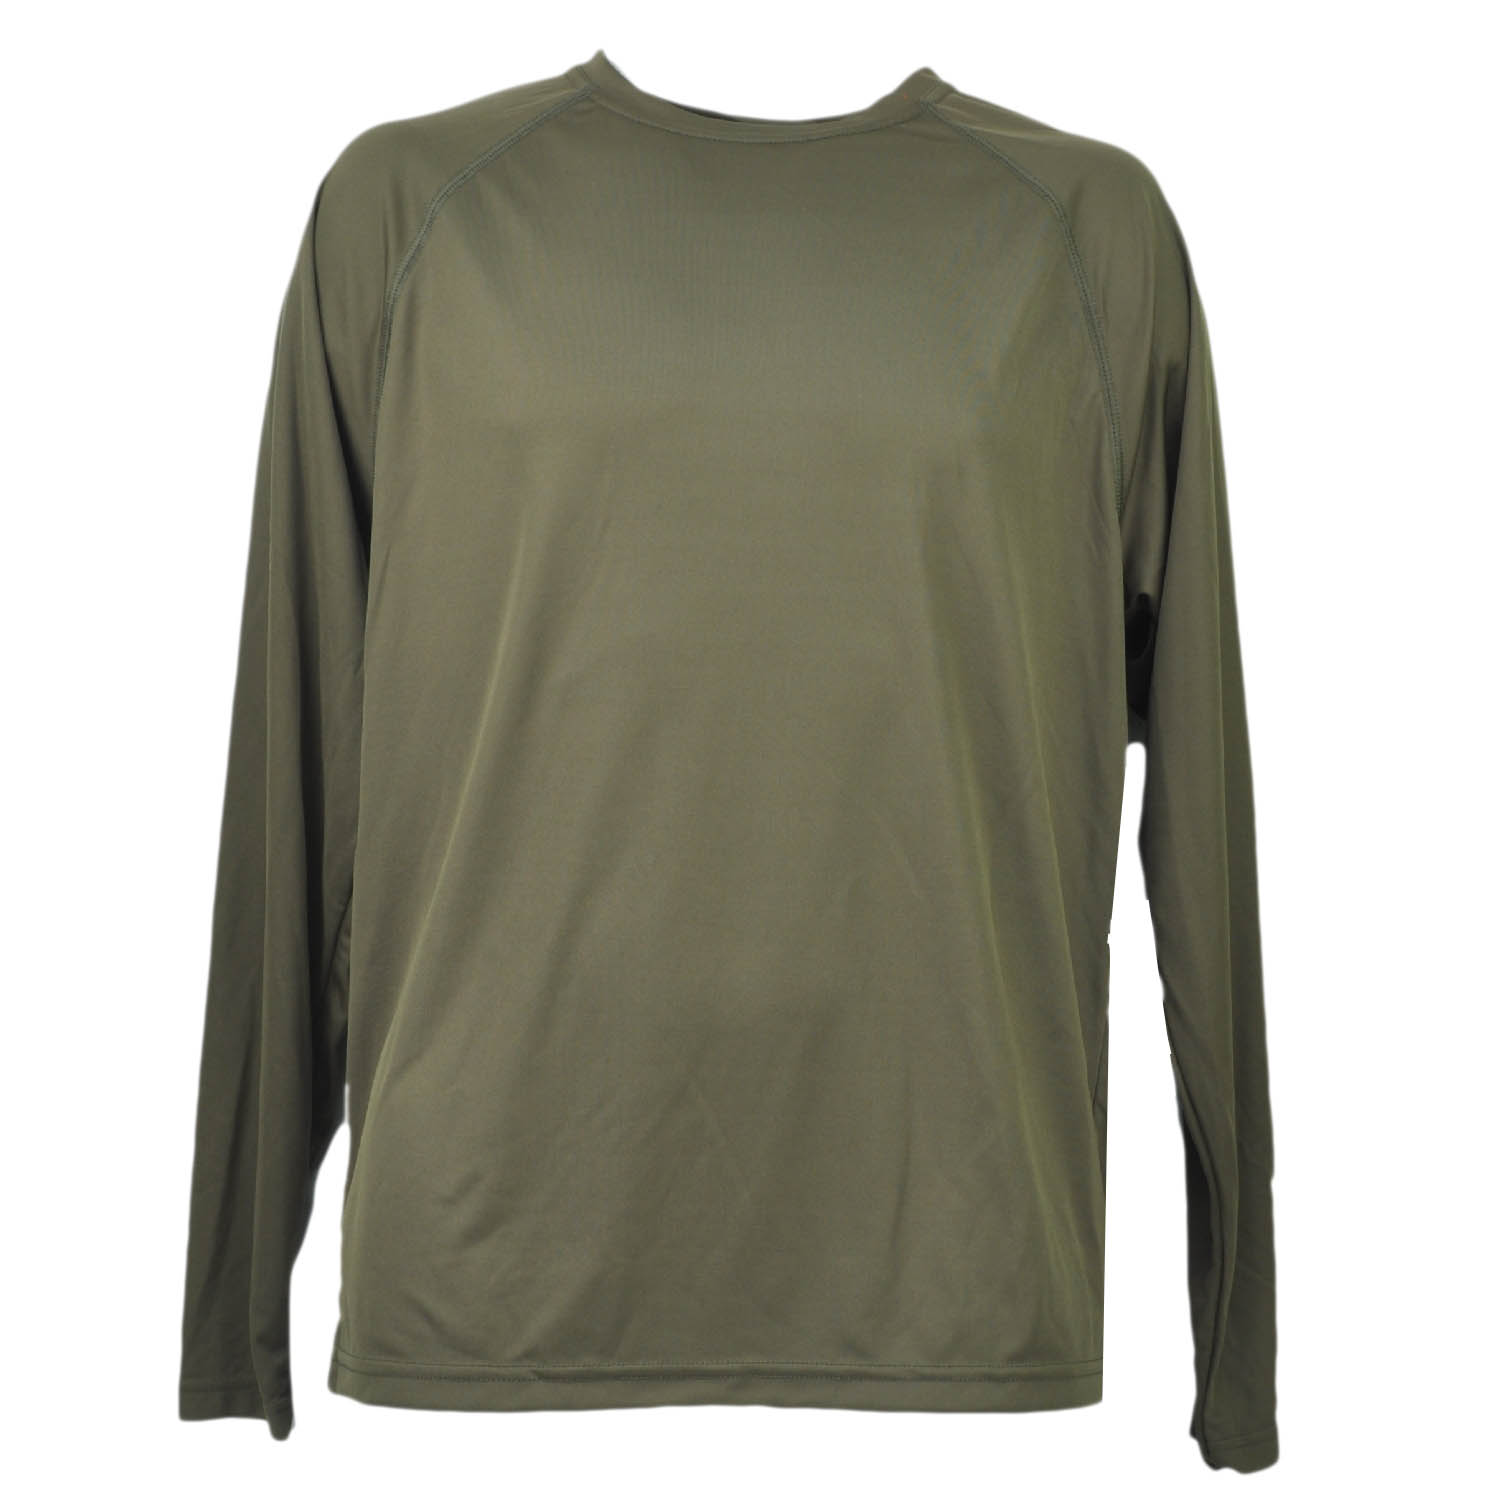 Olive Green Dry Fit Tshirt Tee Mens Adult Long Sleeve Plain Blank Crew Neck XL